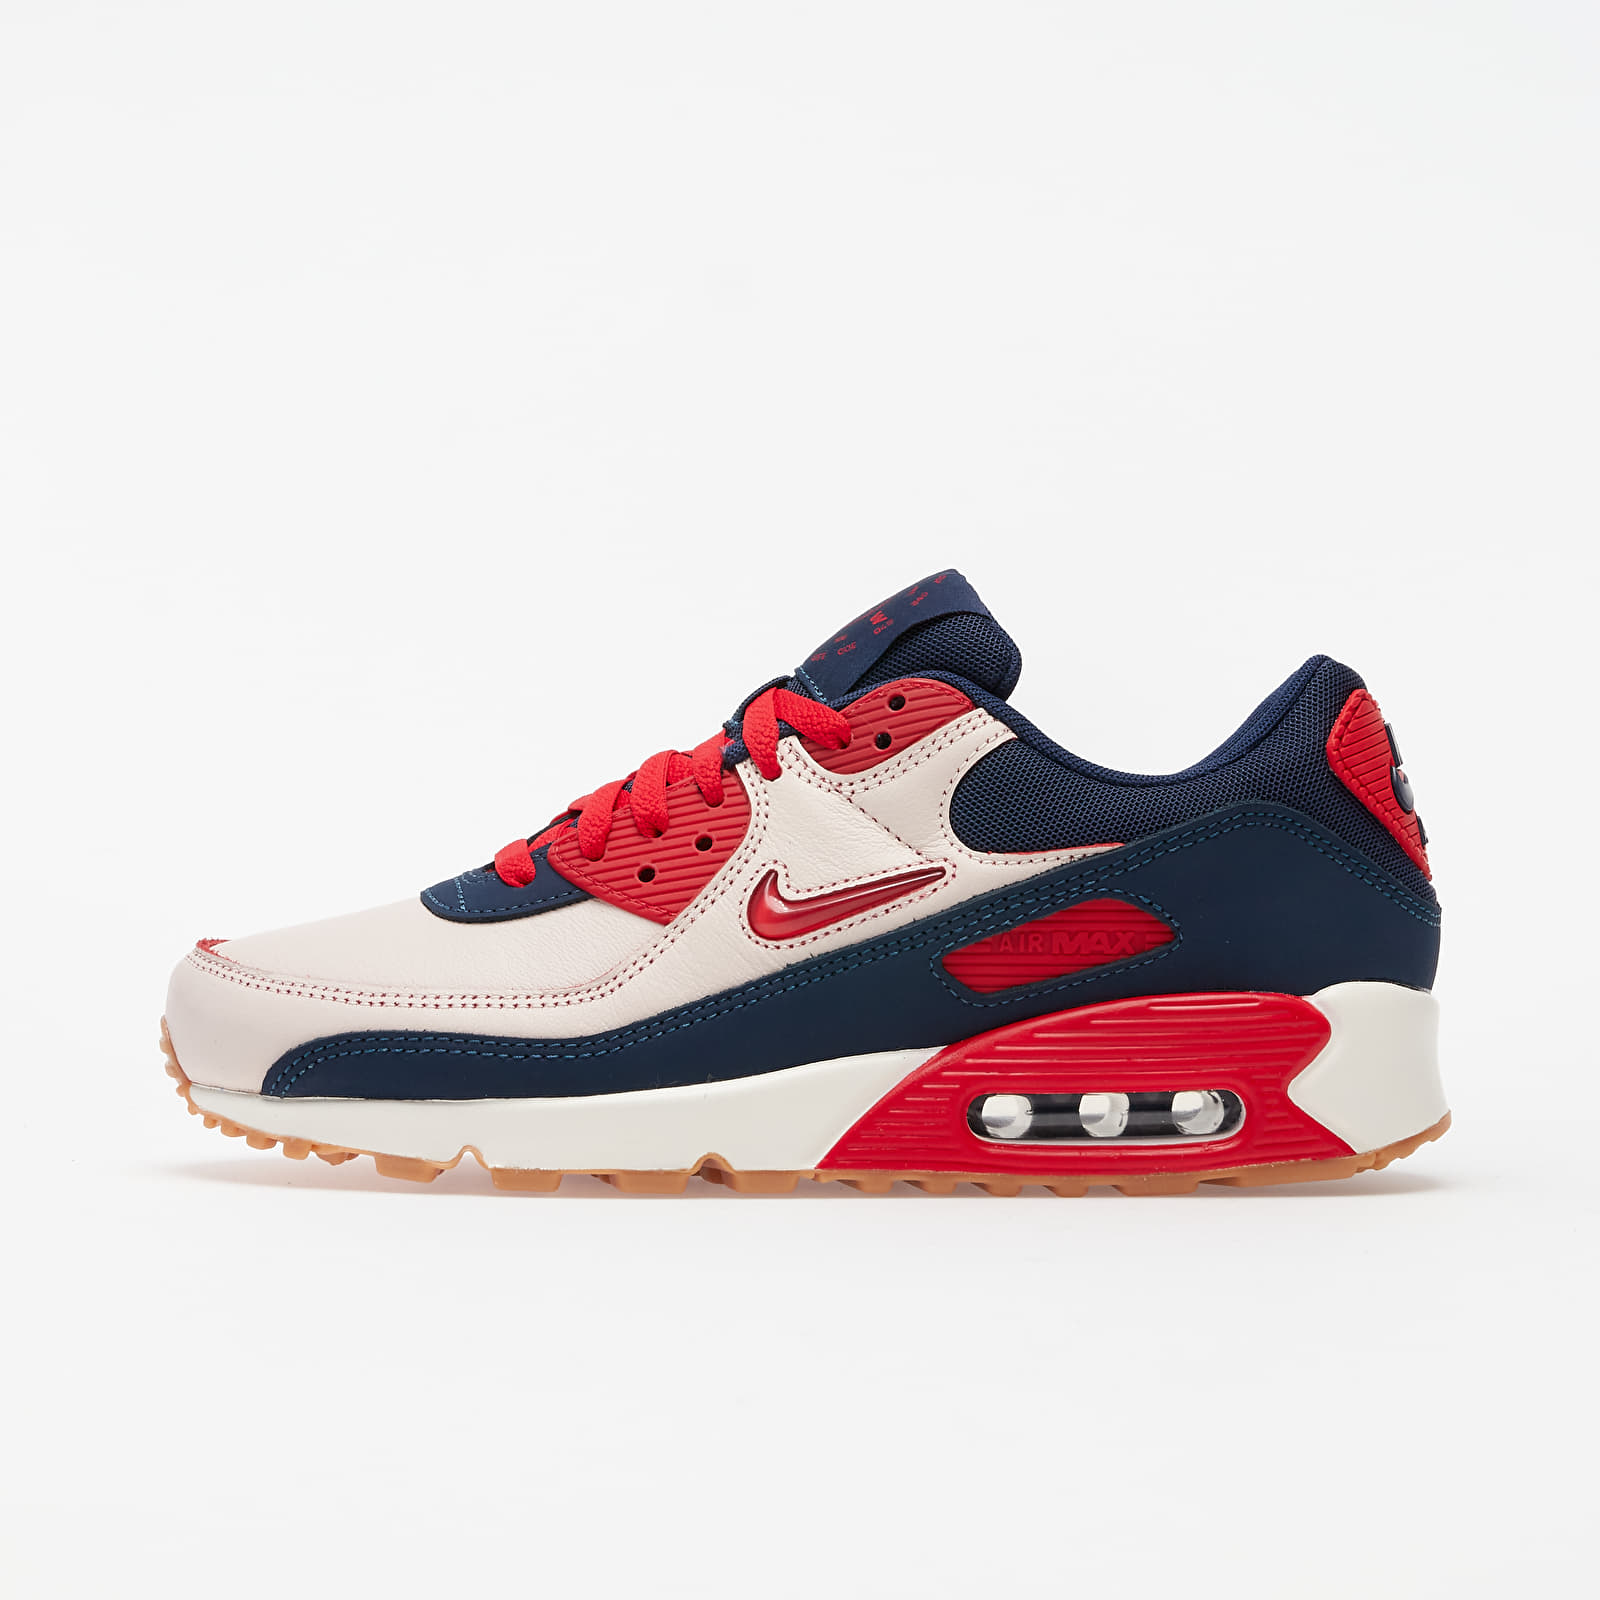 Zapatillas Hombre Nike Air Max 90 Premium Sail/ University Red-Midnight Navy